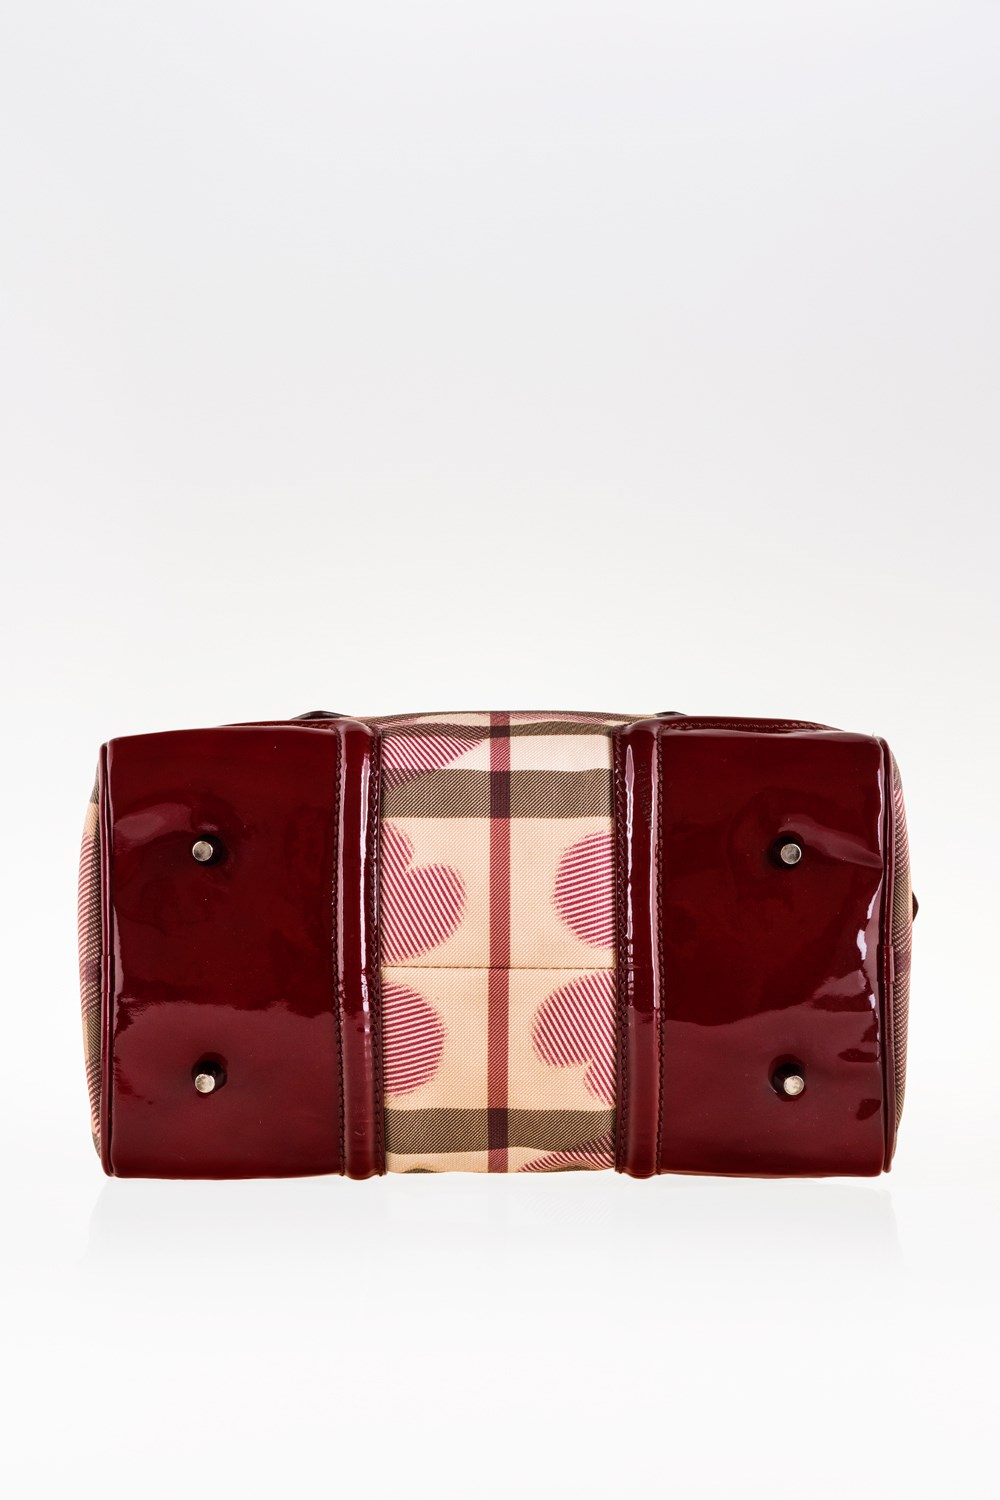 3a6909f03bd Buy burberry heart wallet  Free shipping for worldwide!OFF54% The ...